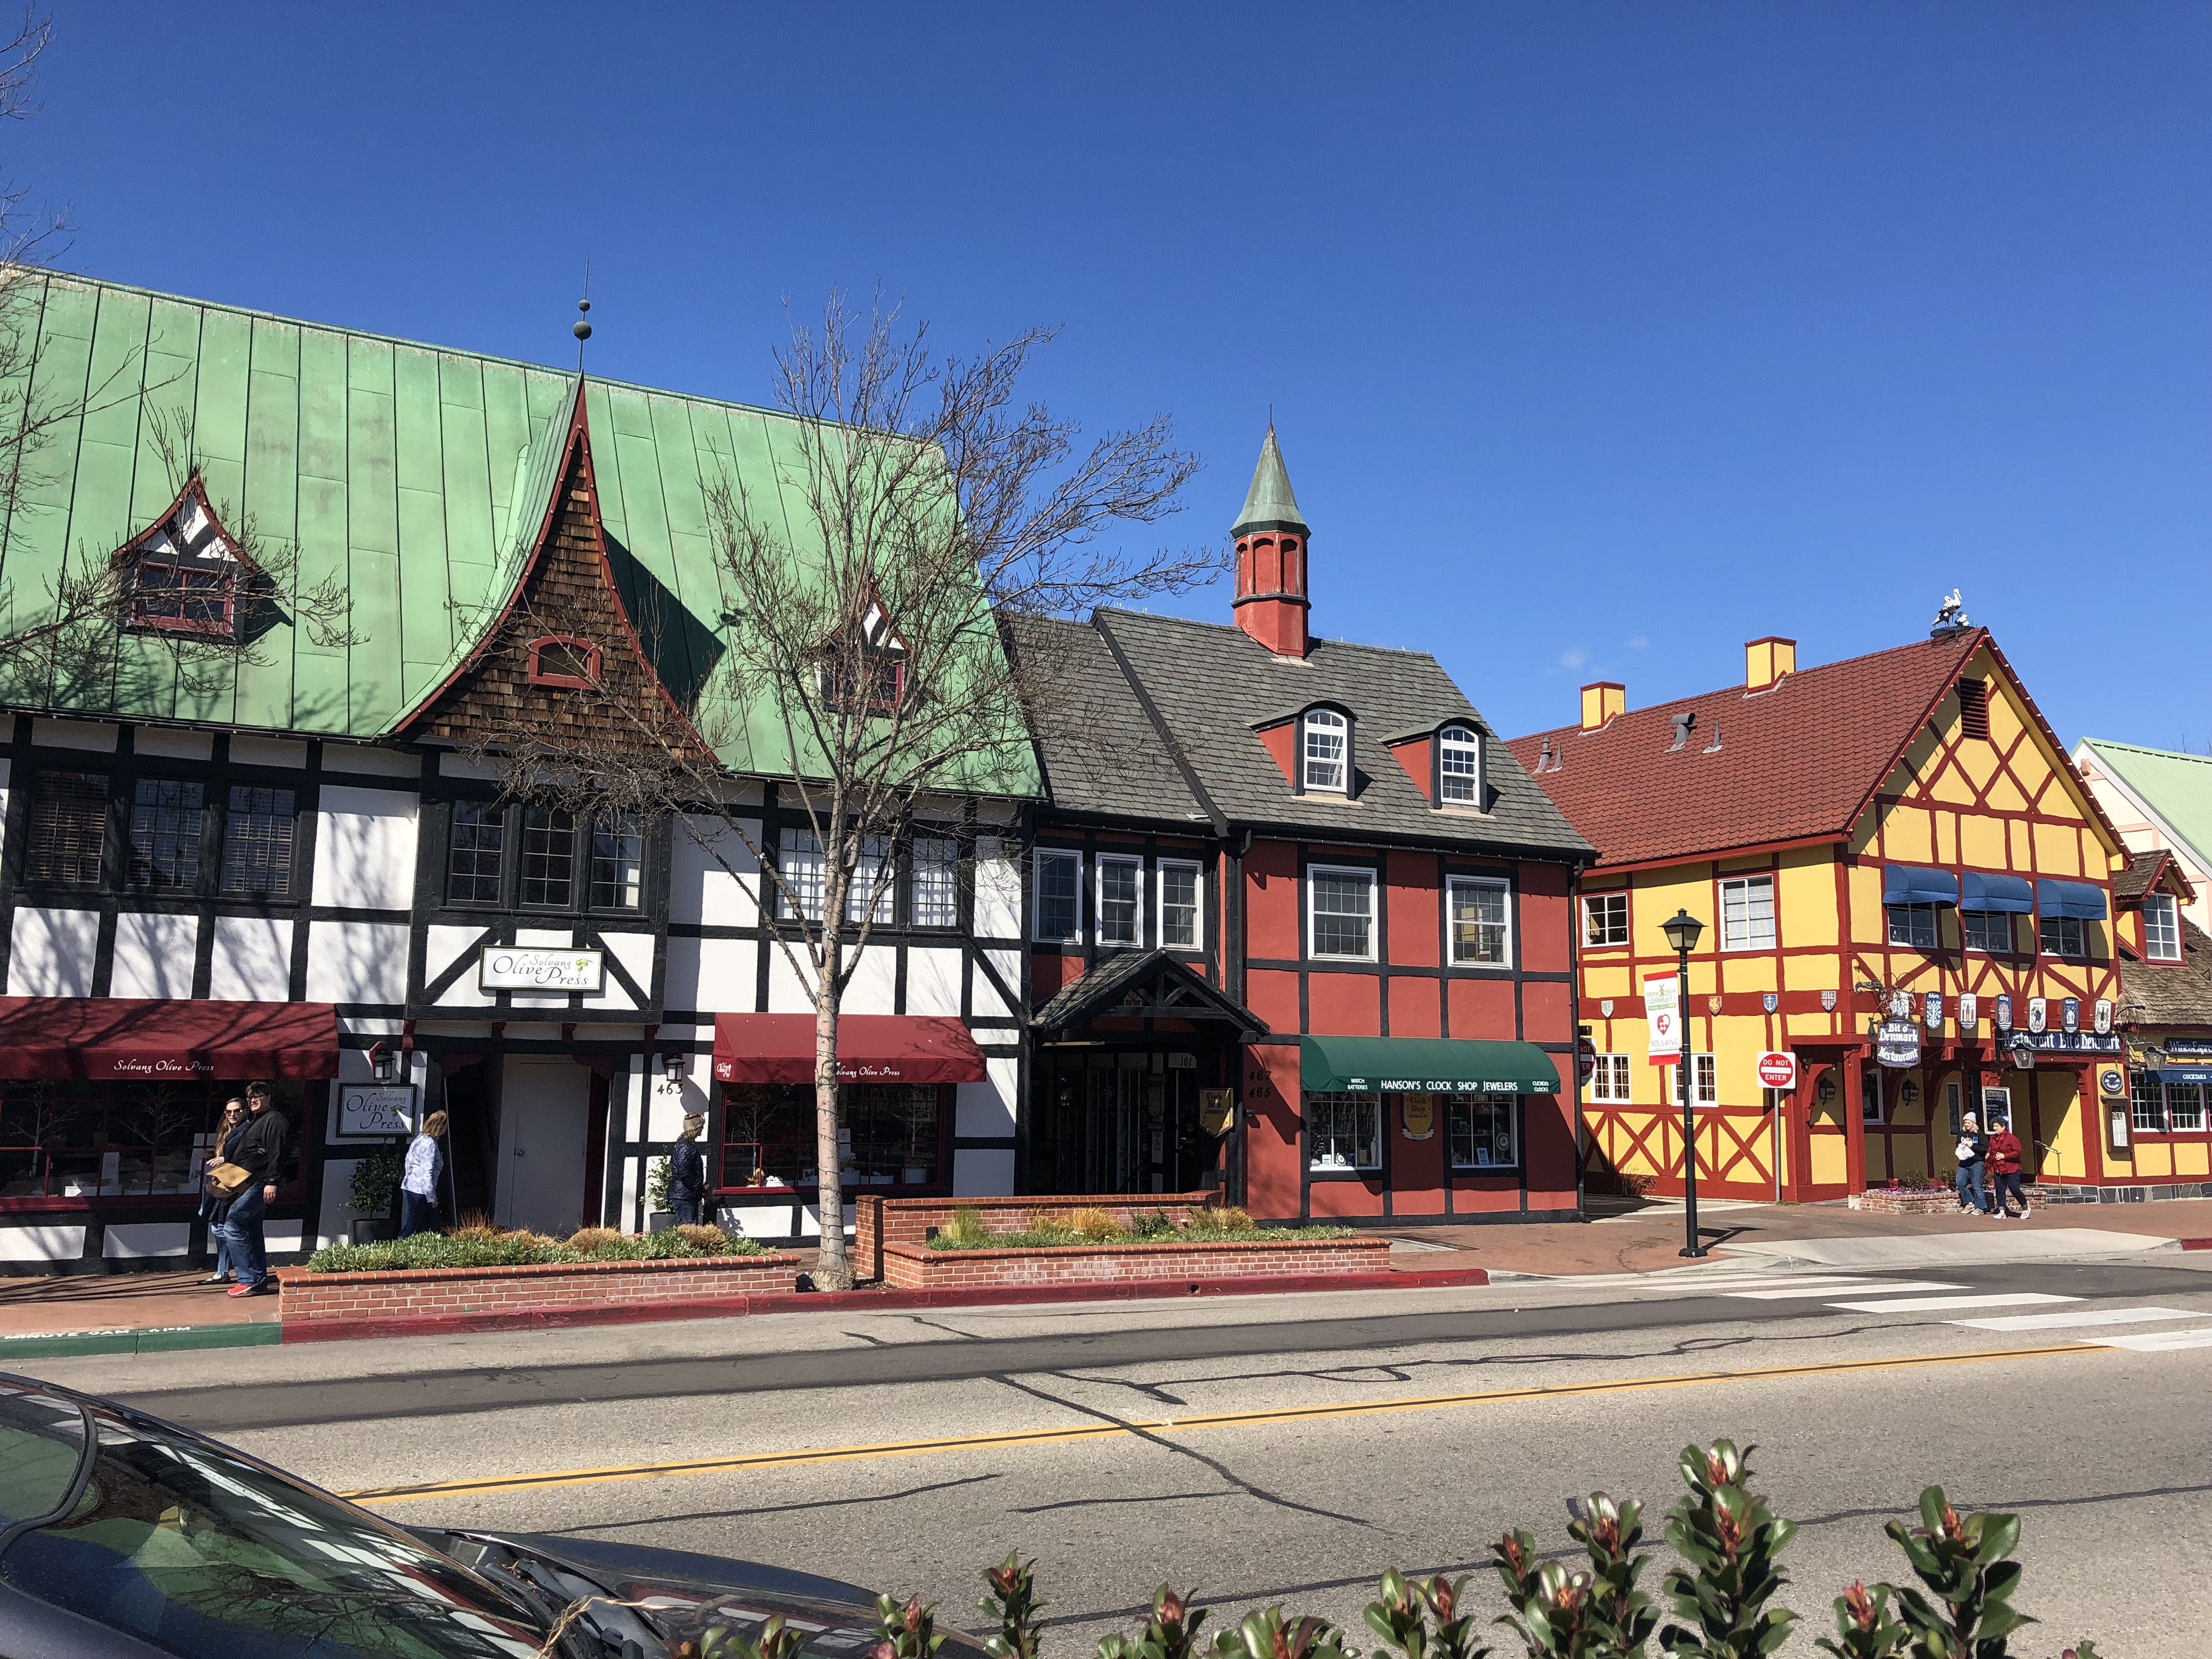 Colorful buildings on a street in Solvang